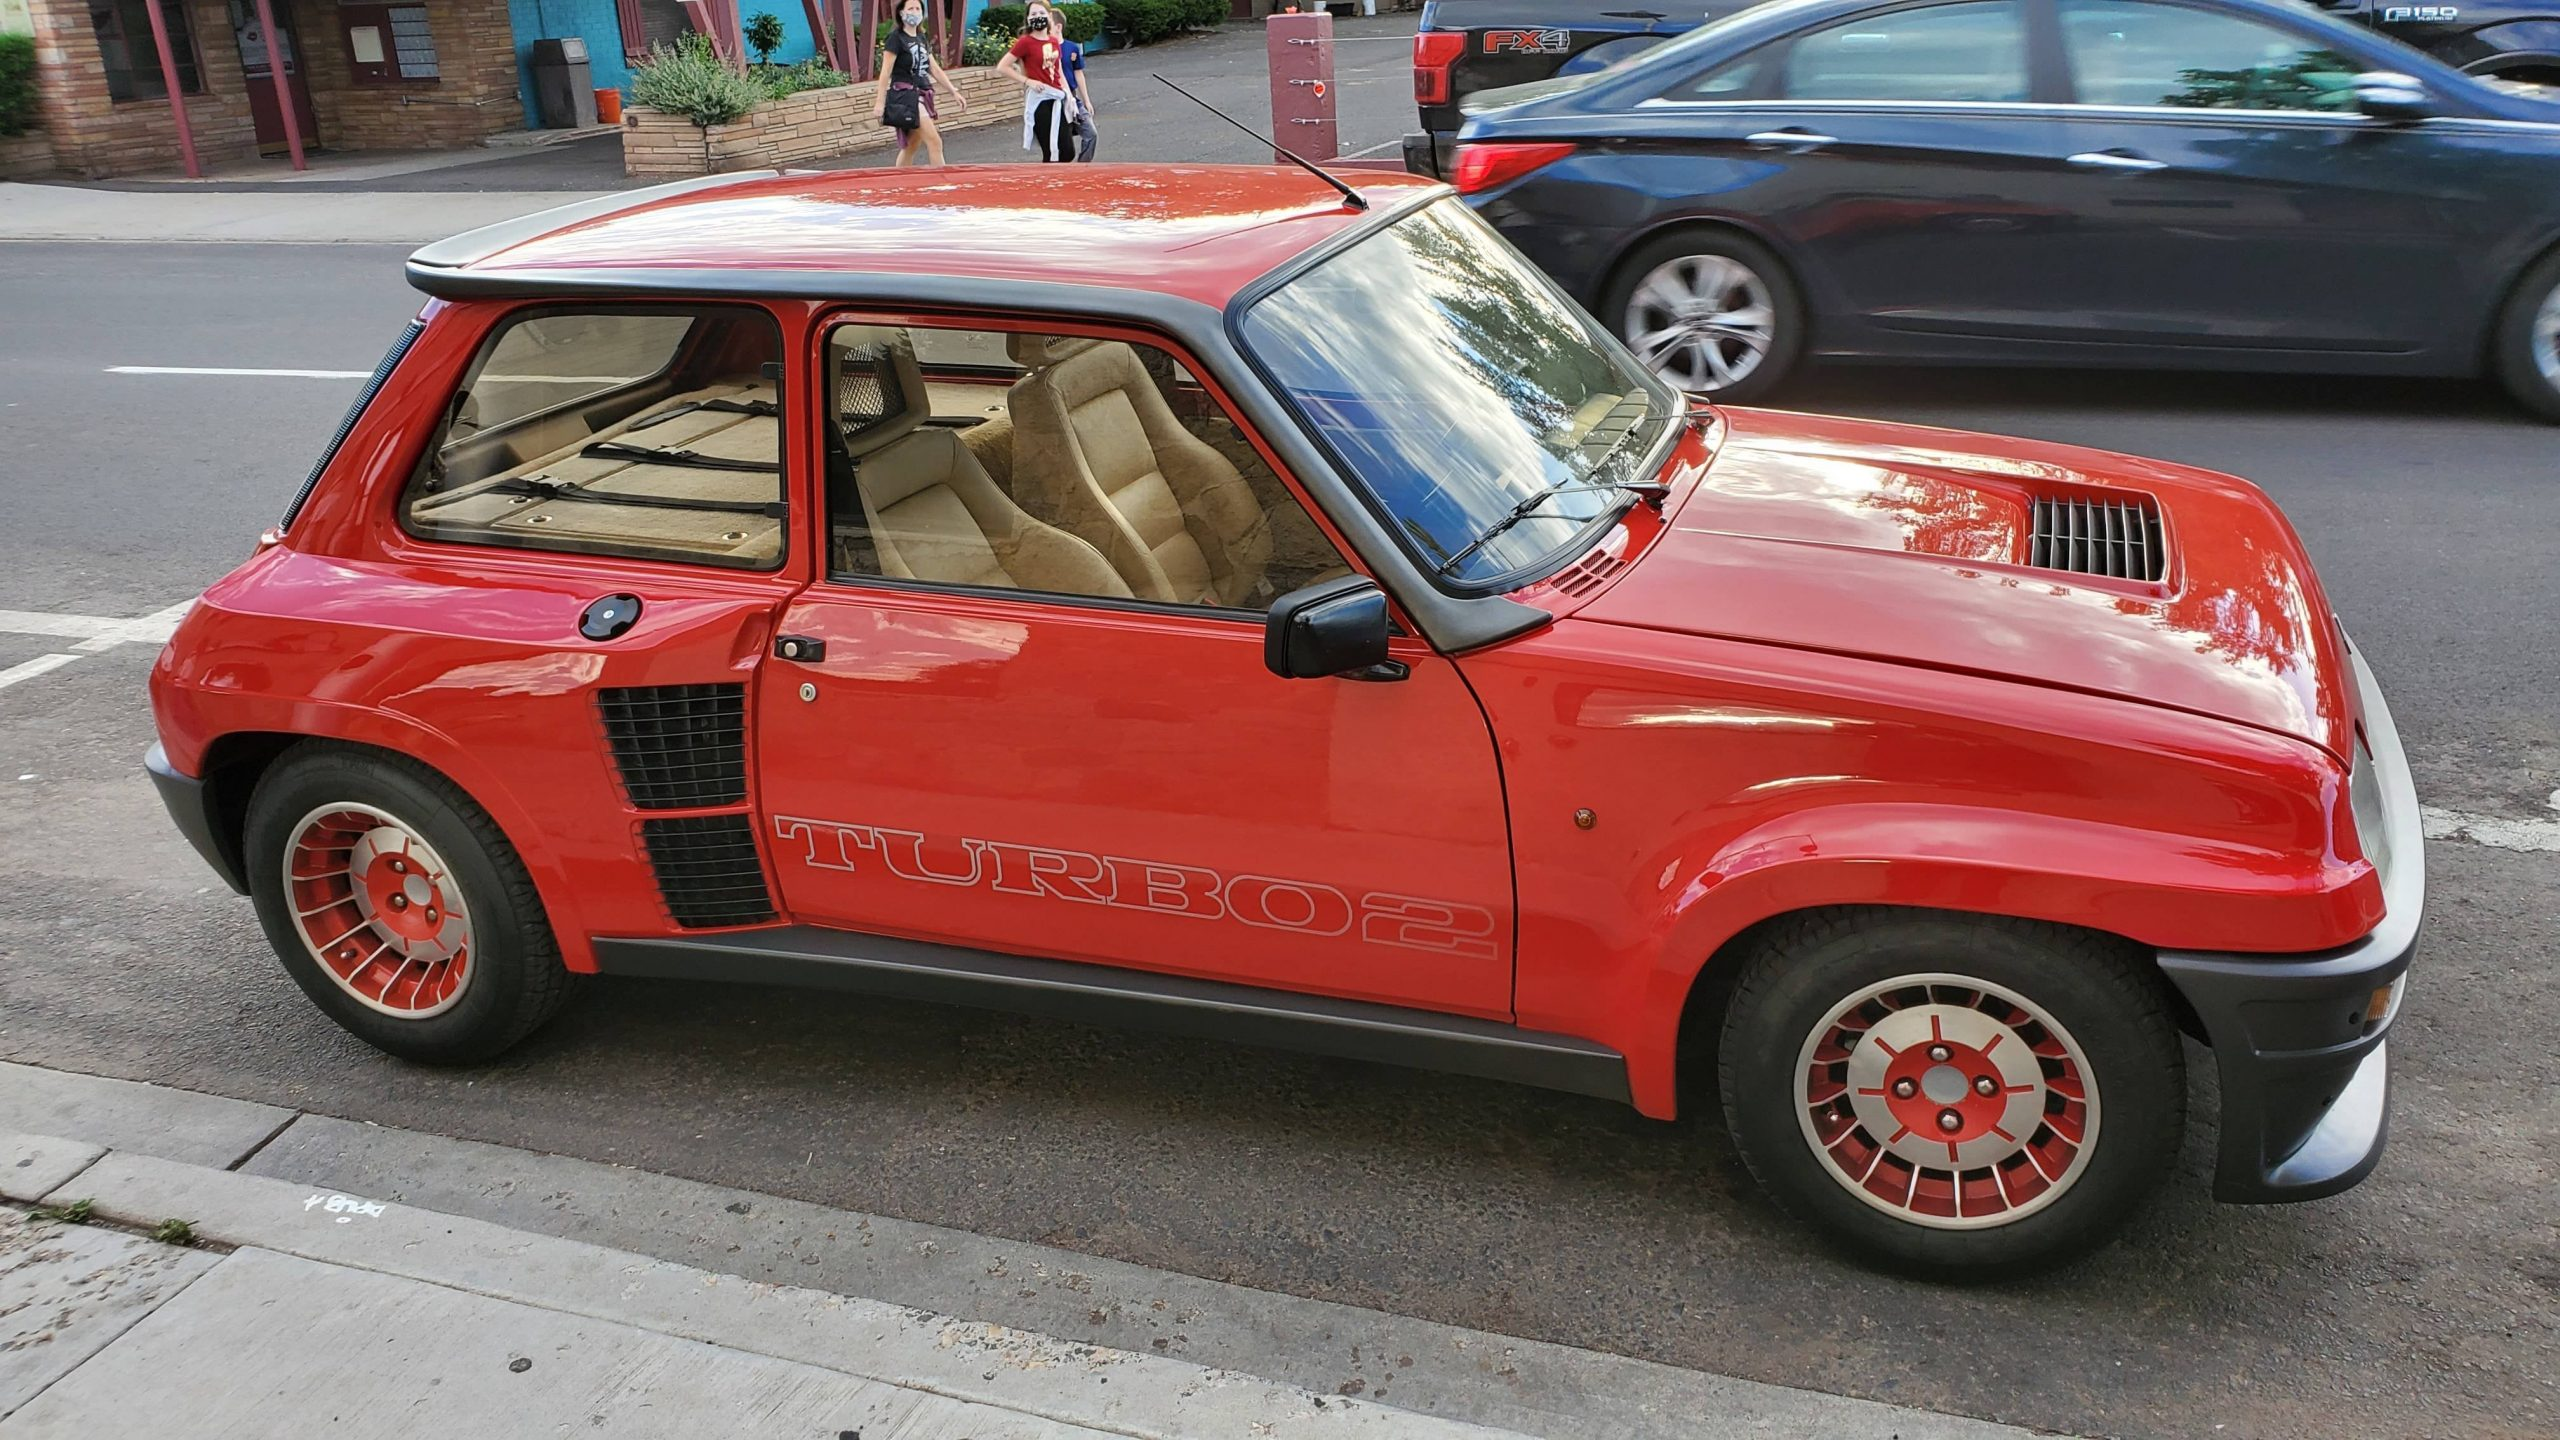 Mint Renault 5 Turbo 2 spotted in the states today.